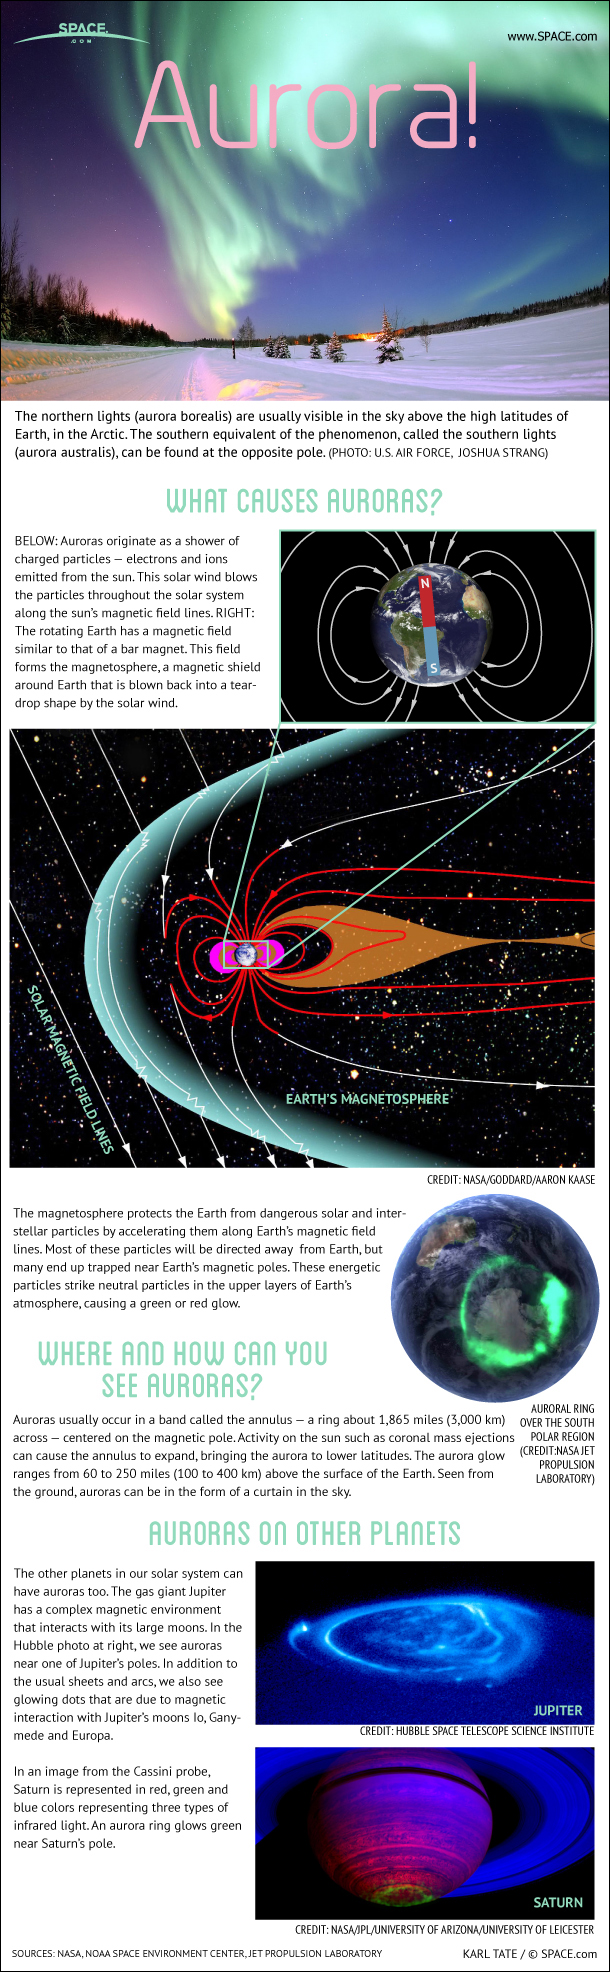 Guide to the Auroras (Infographic)